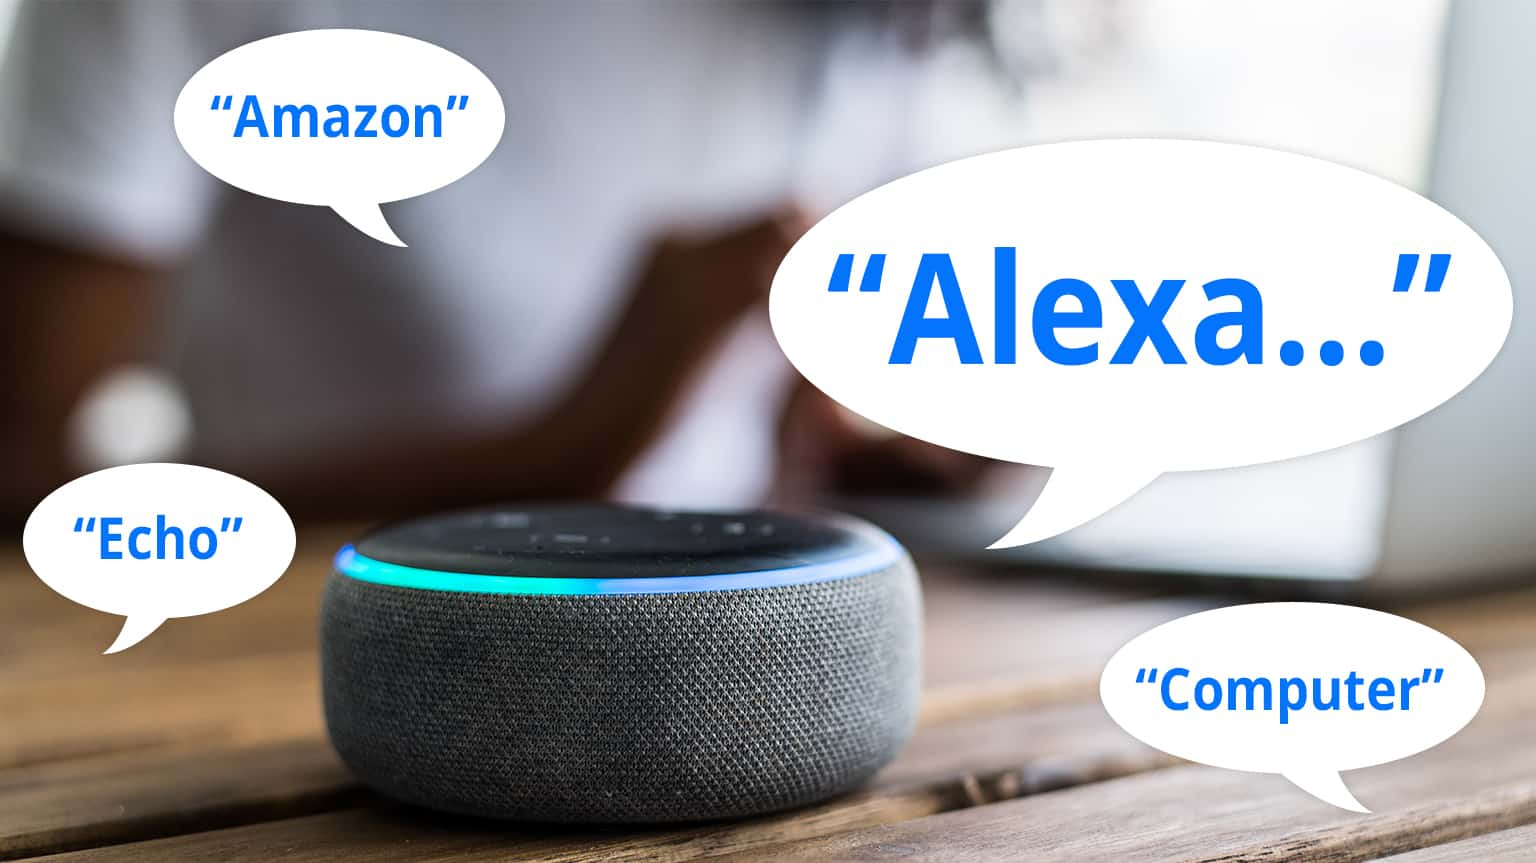 A full guide on how to change the Alexa wake word for Amazon Echo devices